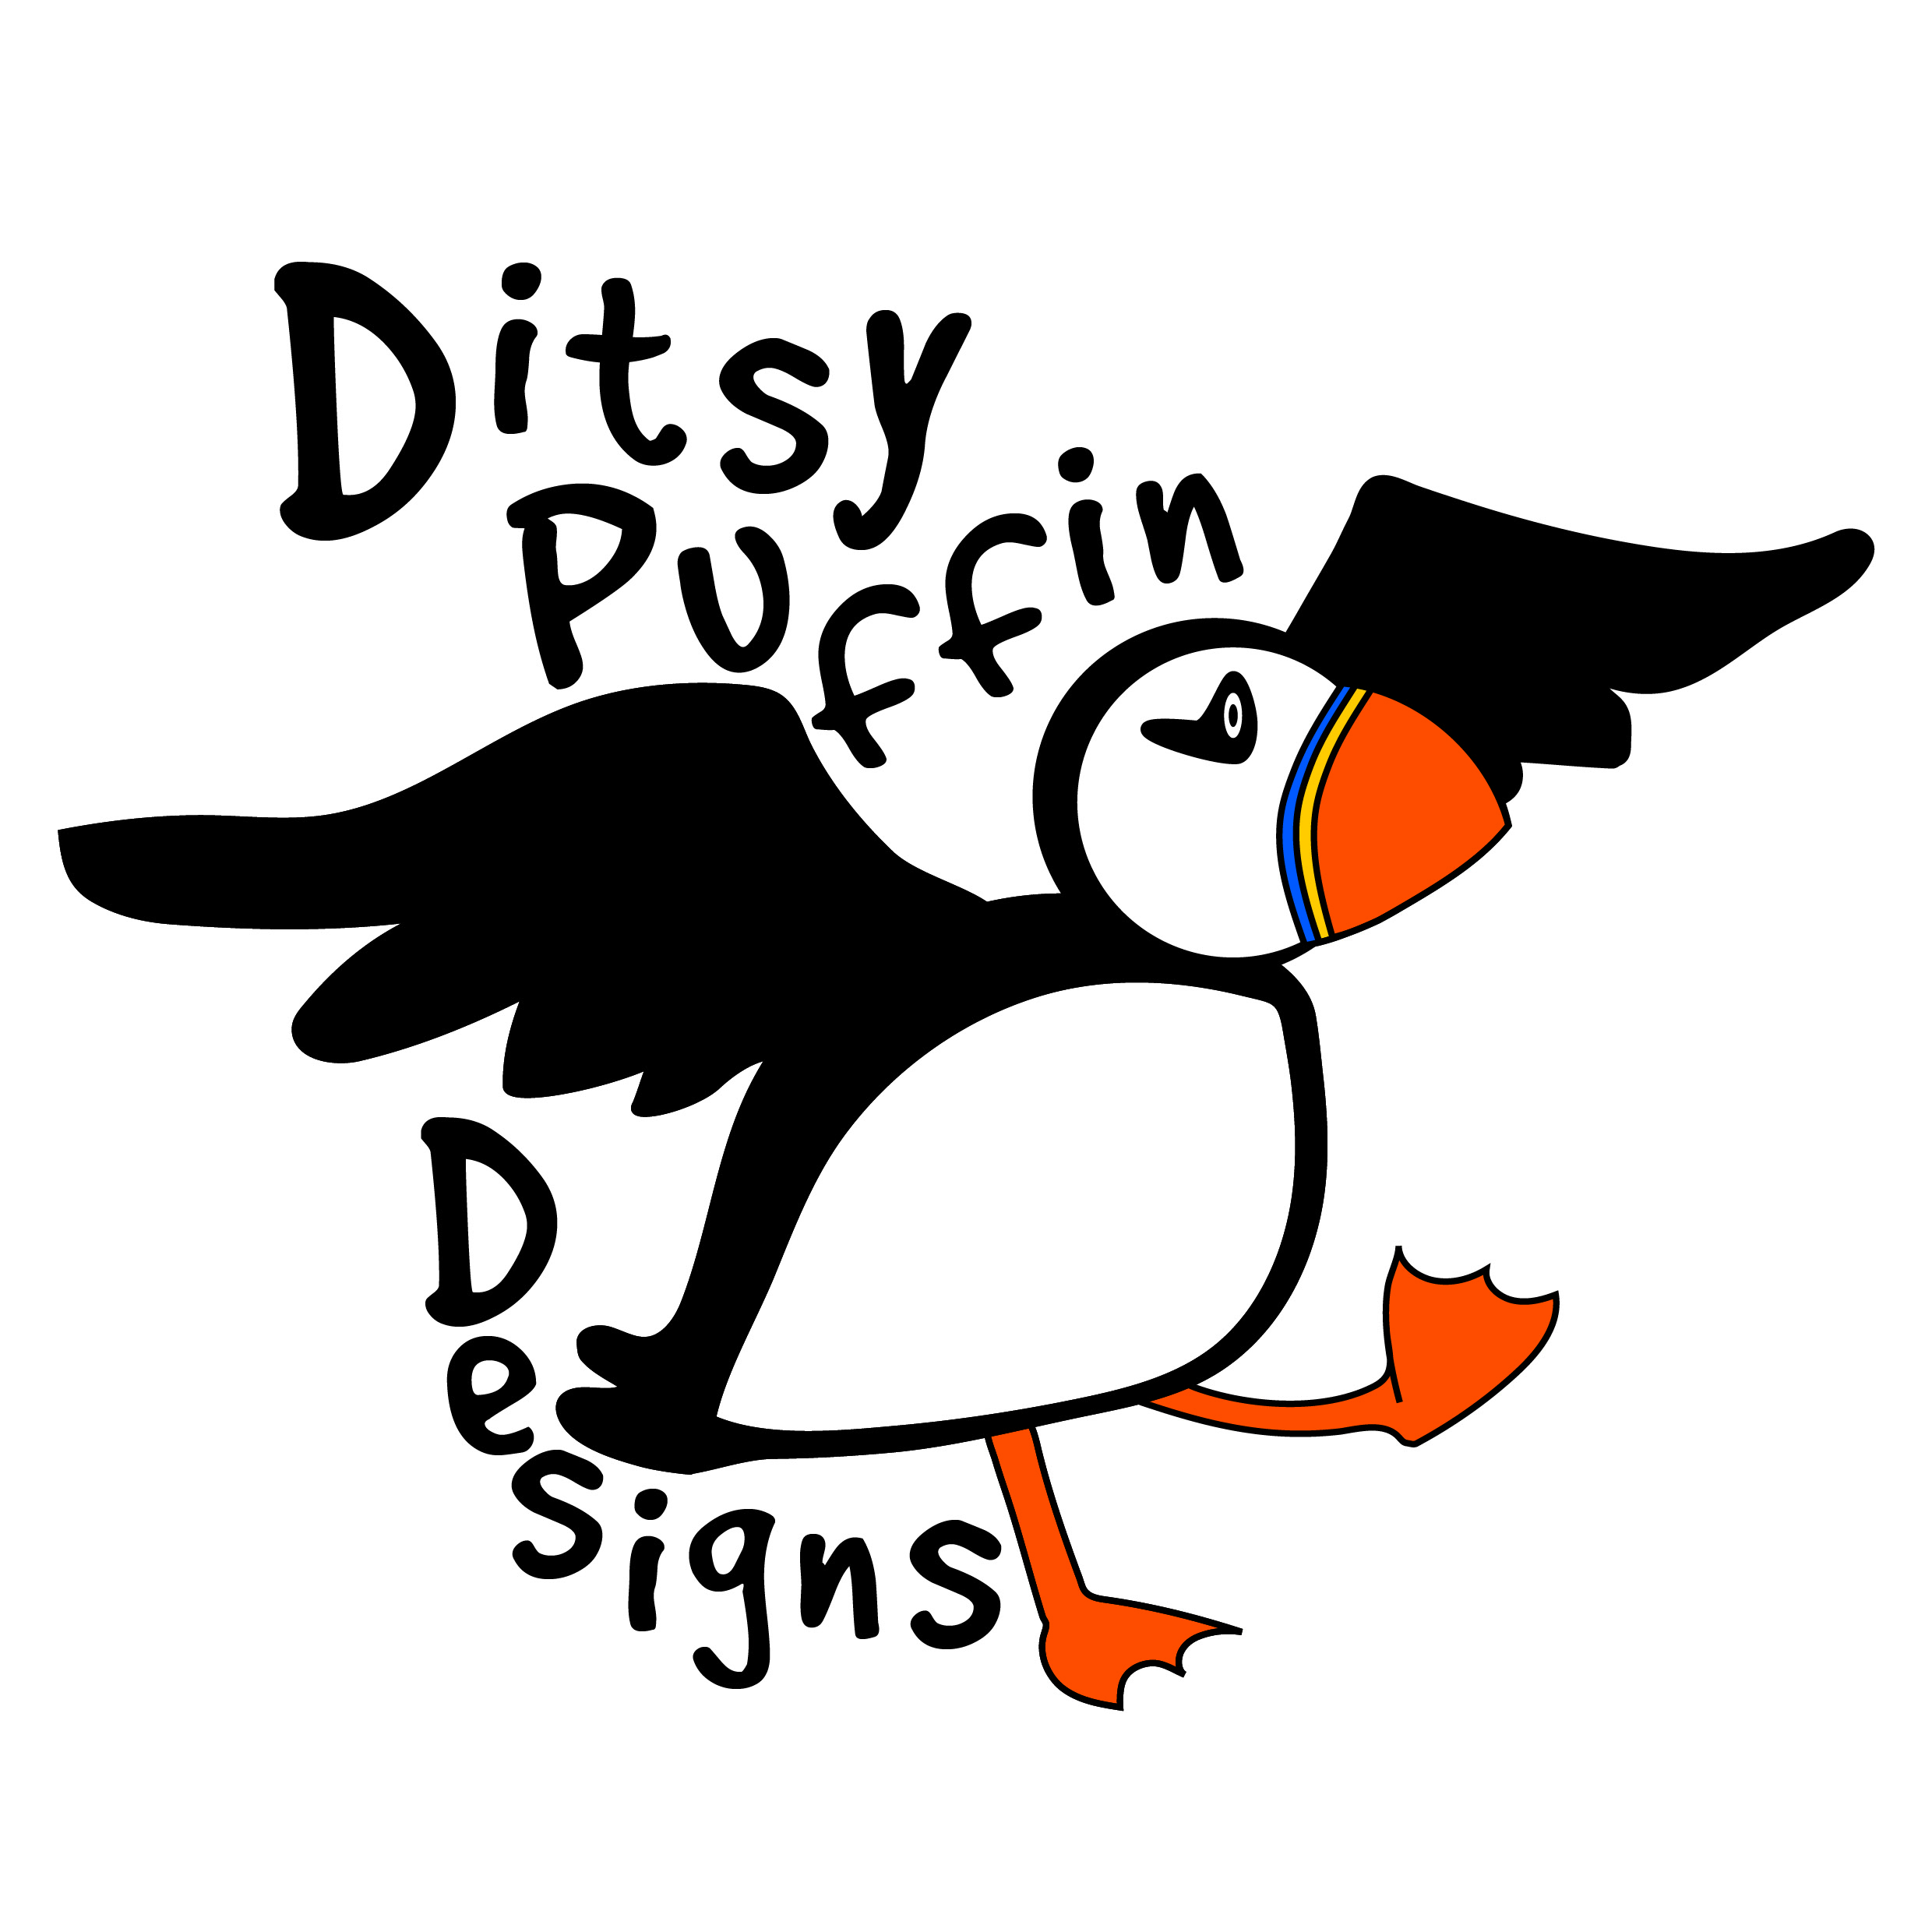 ditsy puffin designs selling quirky funny welsh designs